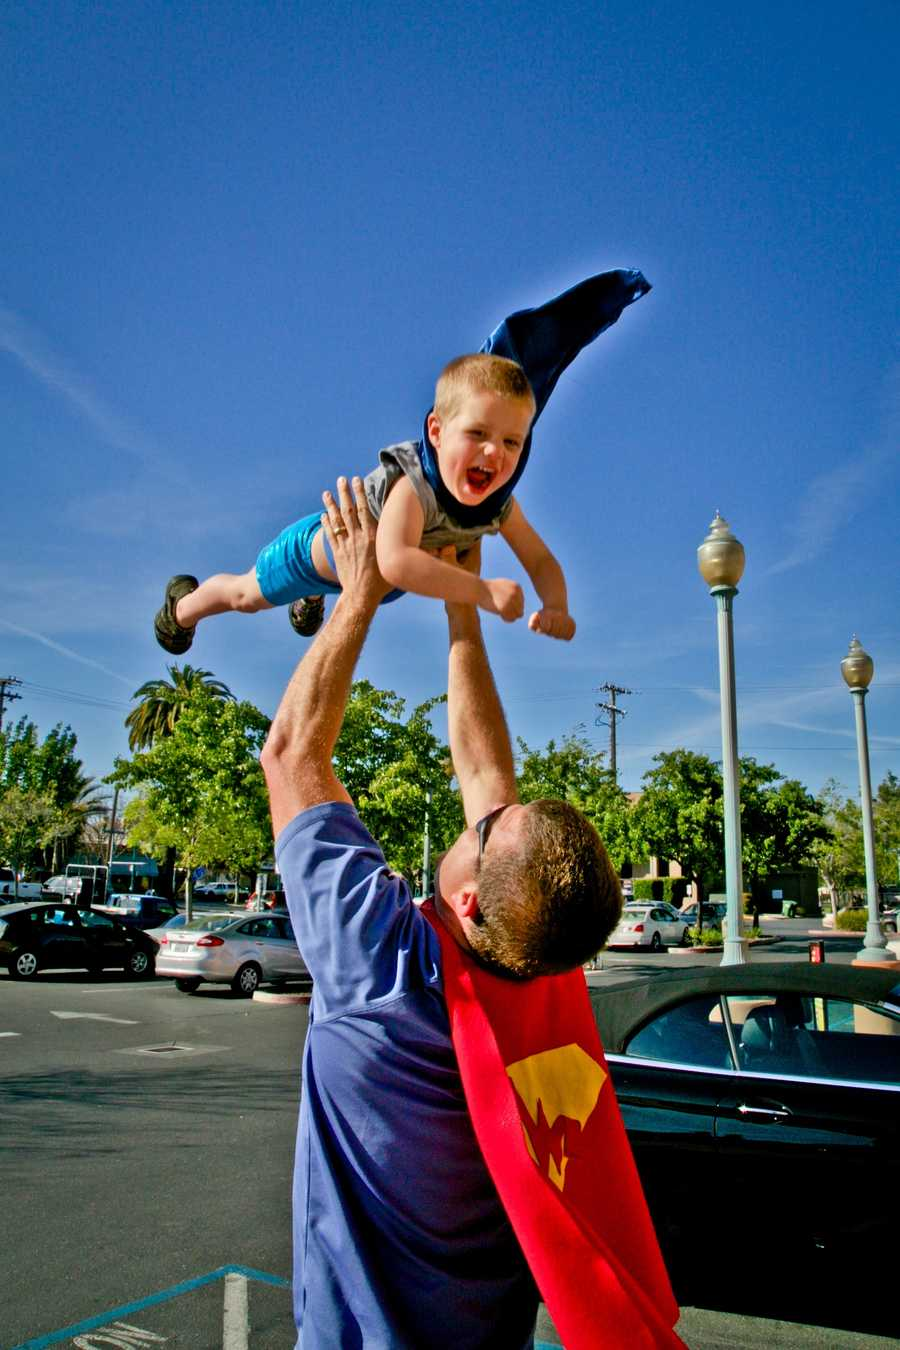 What: Superheroes 5K Run/WalkWhere: Capitol MallWhen: Sun 8amClick here for more information on this event.